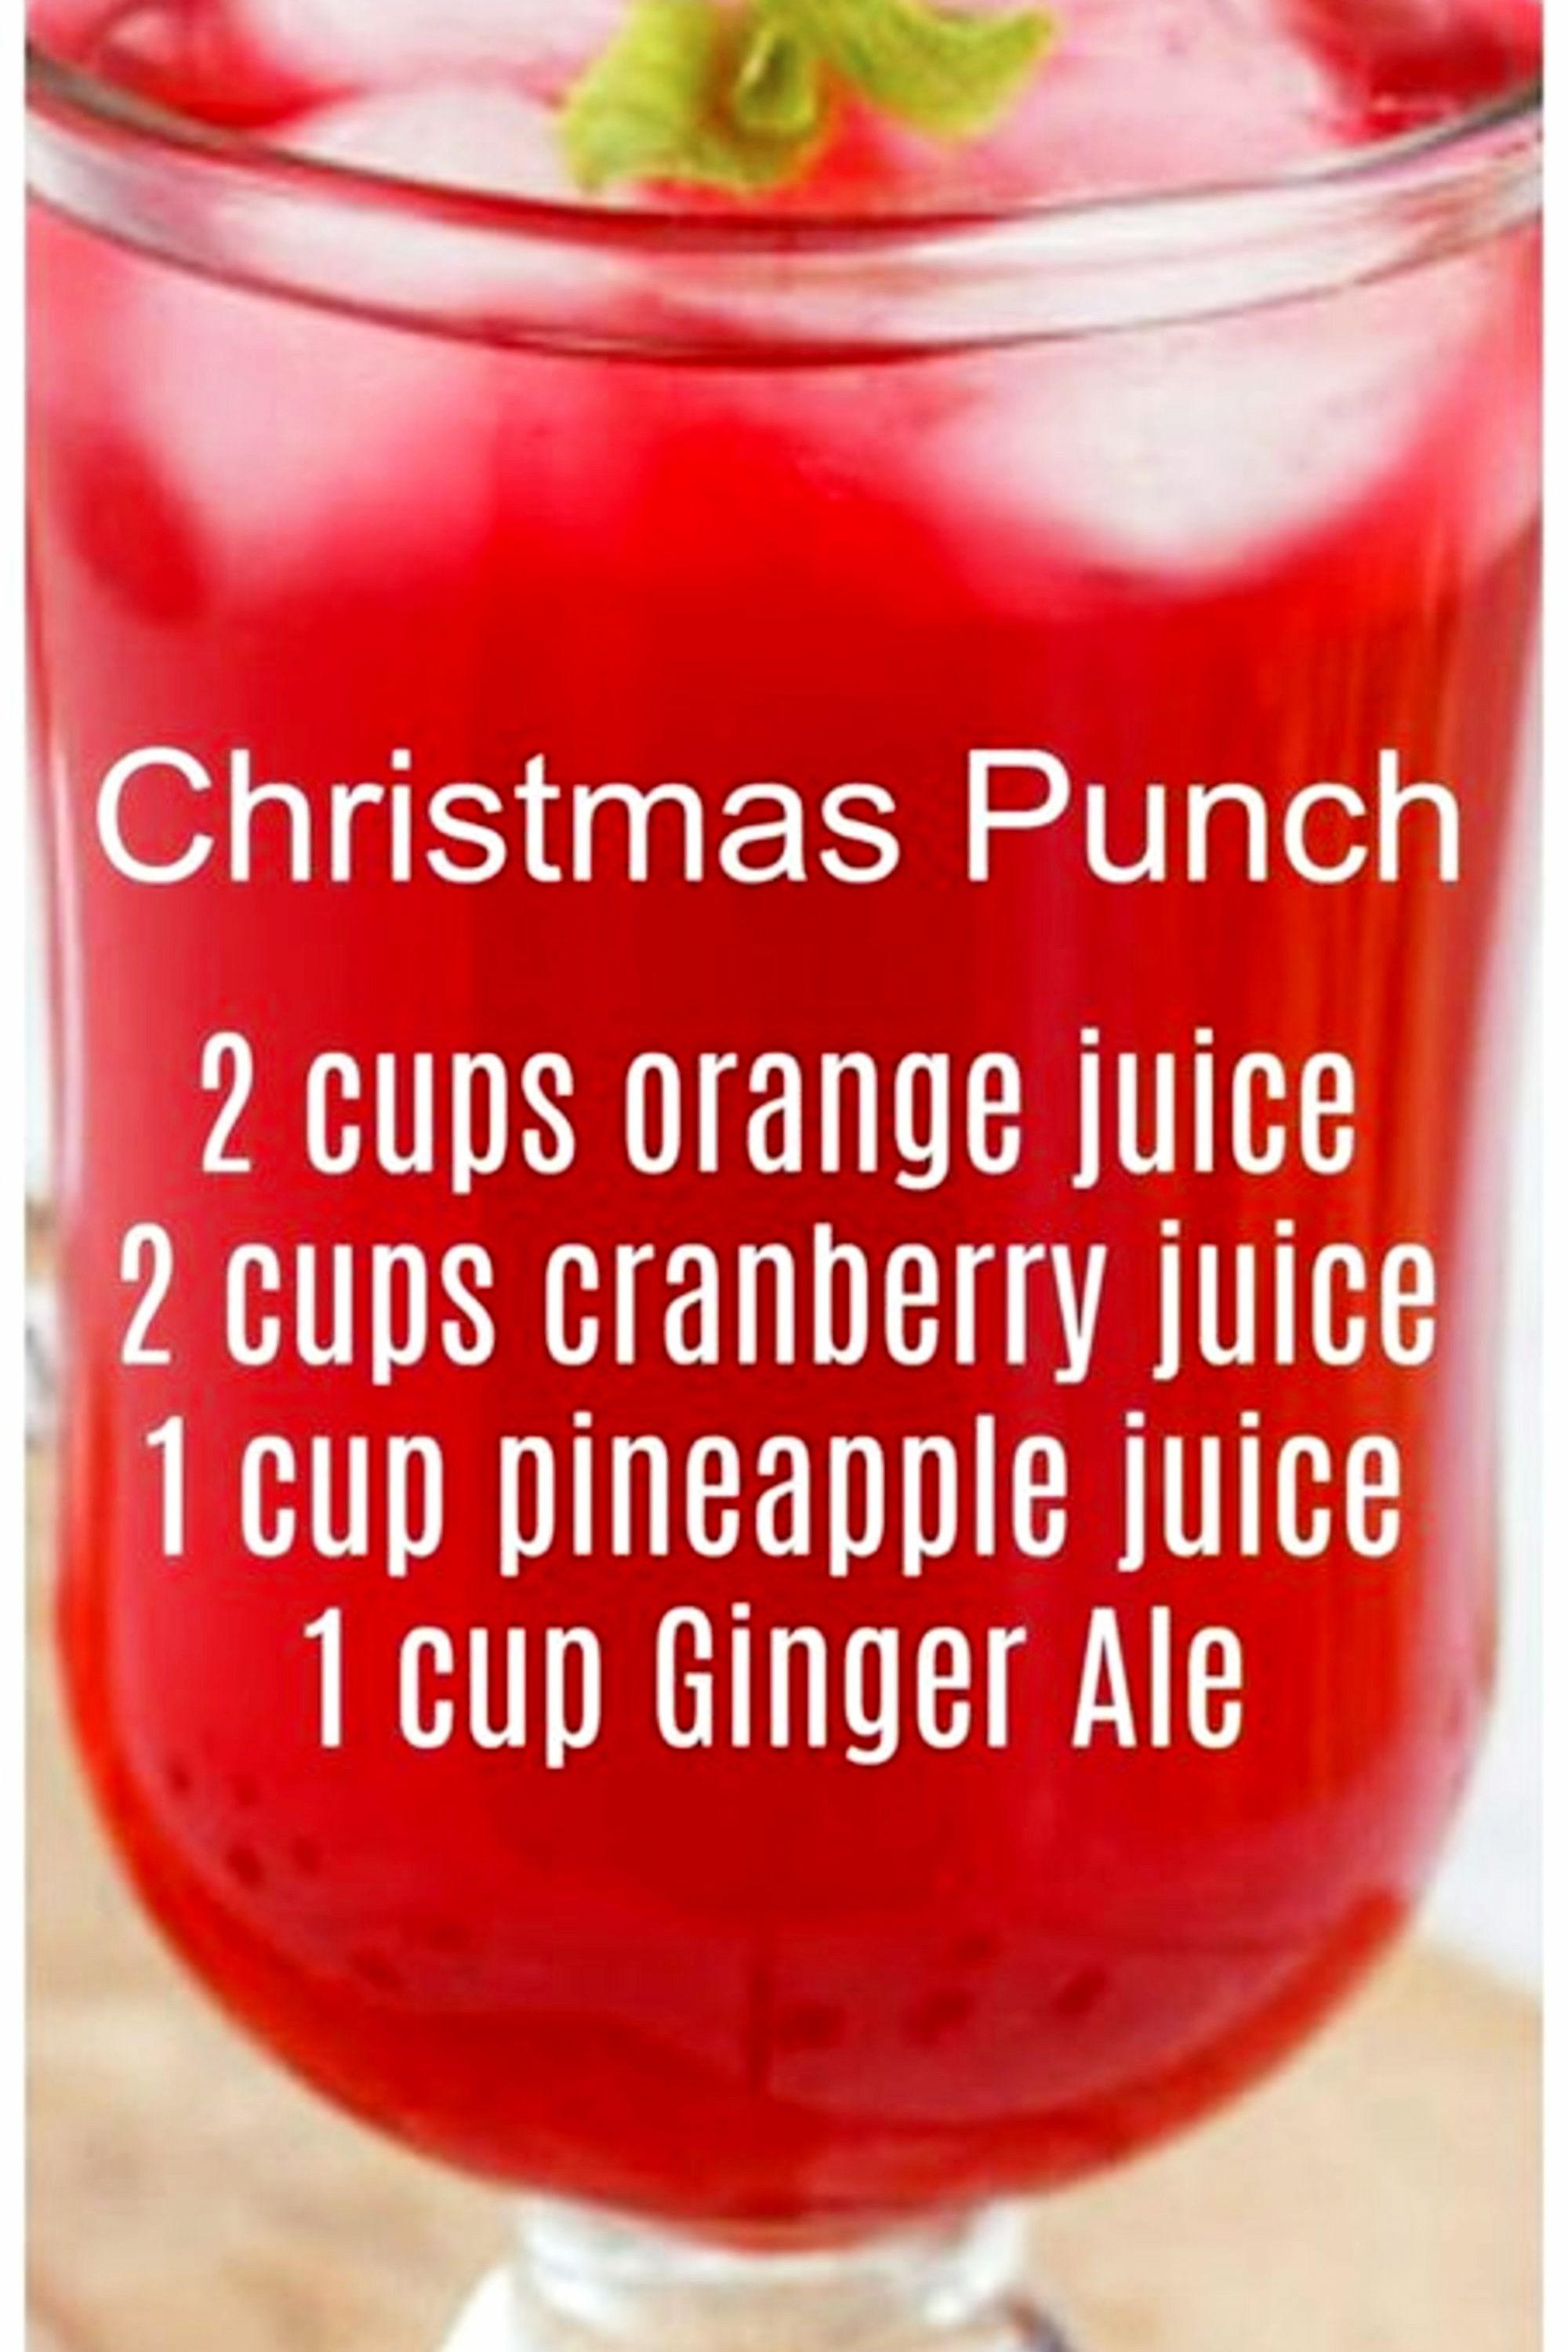 11 Easy Punch Recipes For A Crowd Simple Party Drinks Ideas Both Nonalcoholic And With Alcohol Christmas Punch Recipes Easy Punch Recipes Christmas Drinks